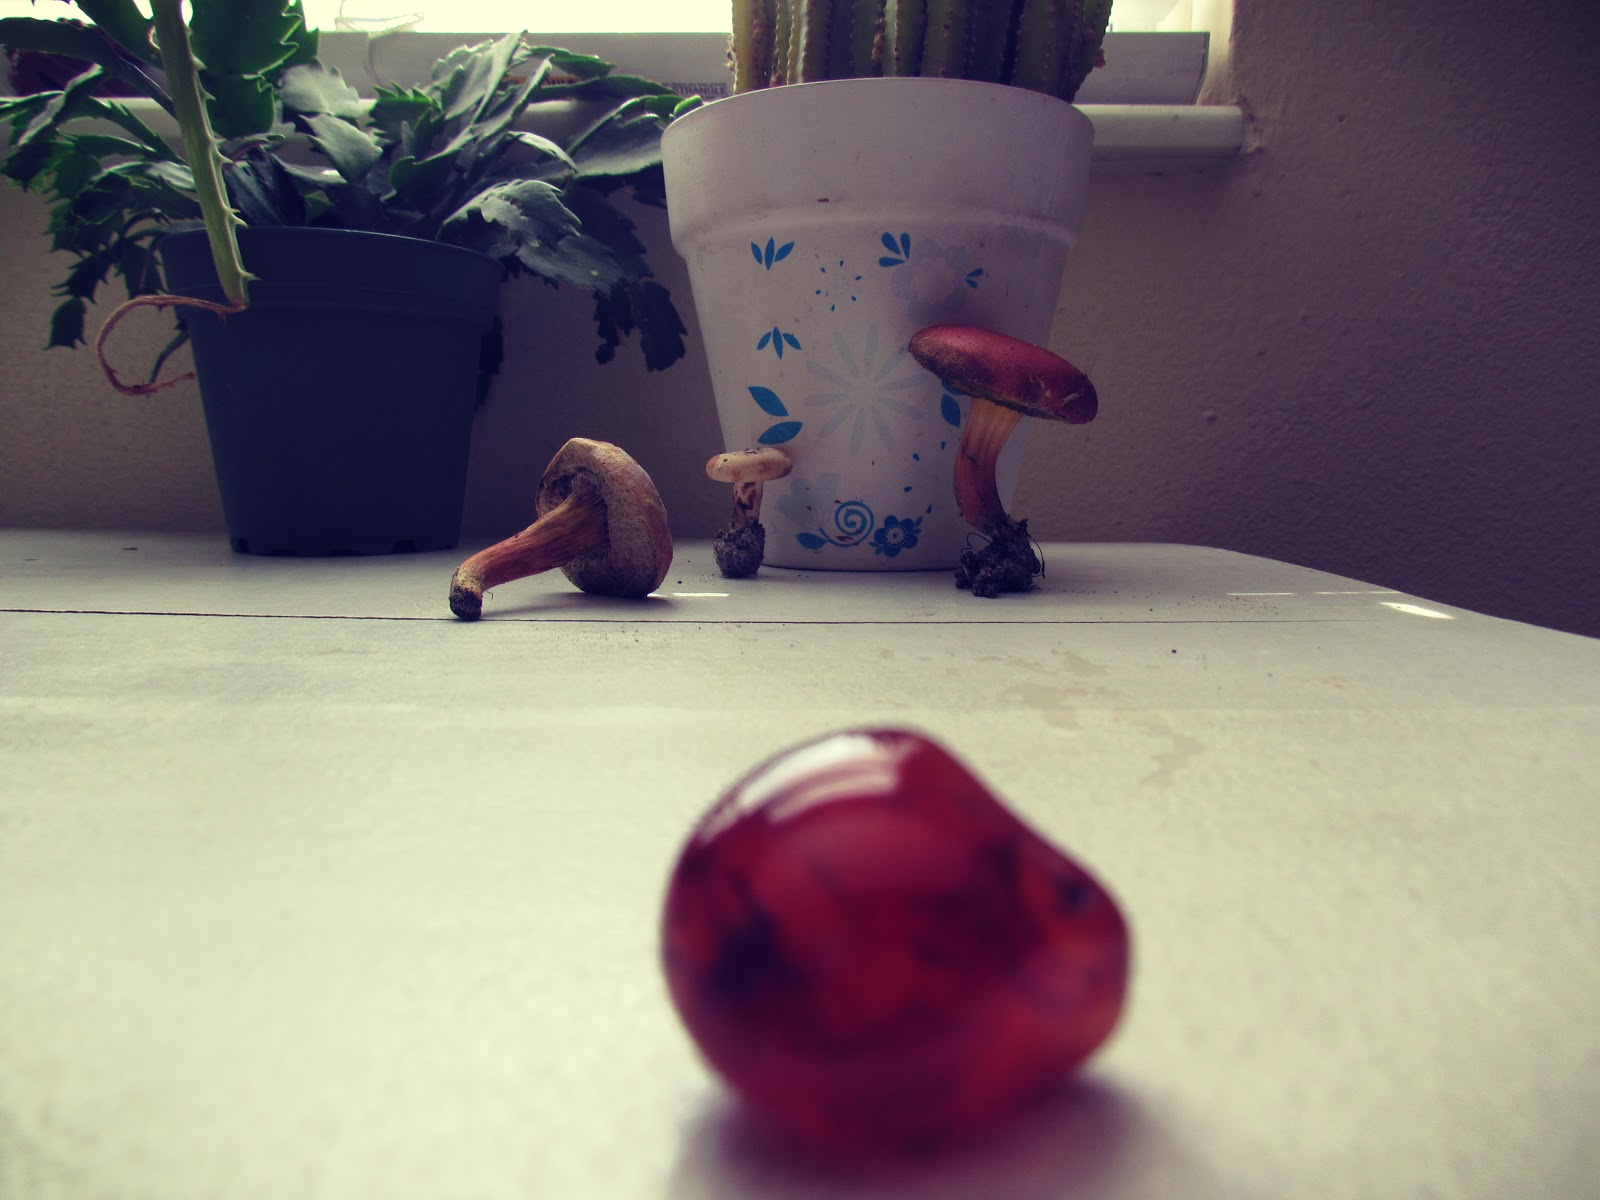 Christmas Cactus Plant, Living Mushrooms, and Red Agate Healing Stones on a White Table Desk